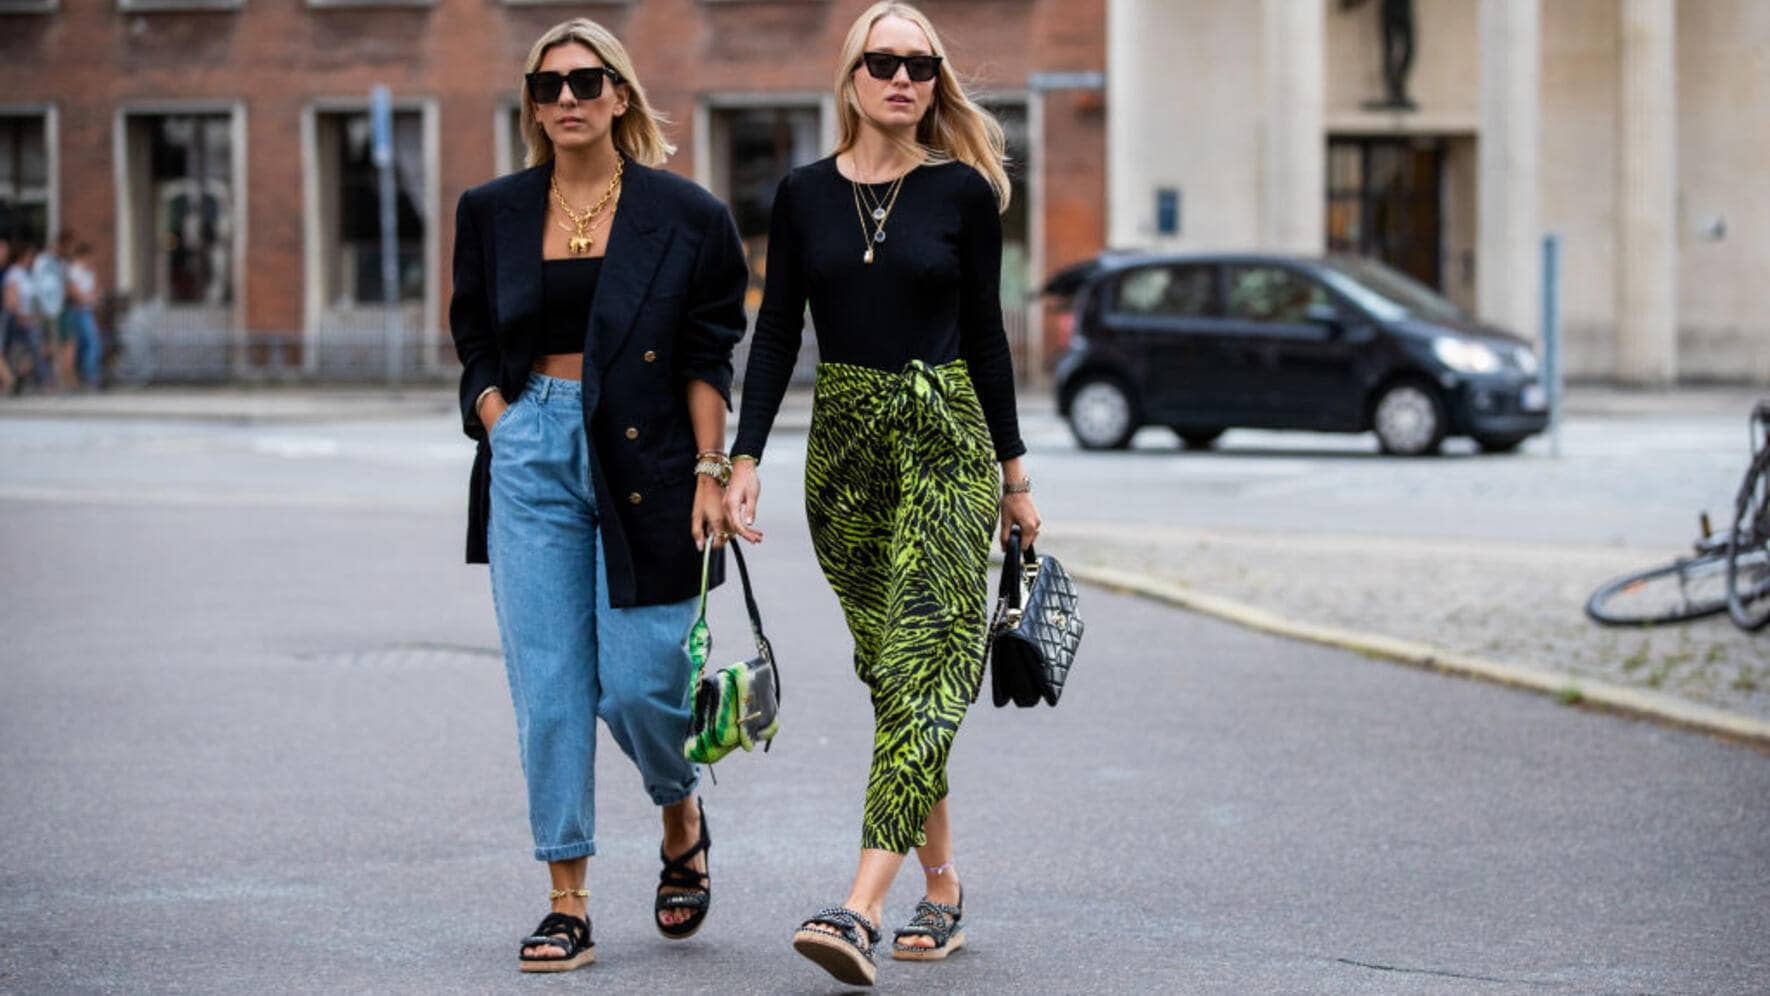 COPENHAGEN, DENMARK - AUGUST 08: Aylin König is seen wearing denim jeans, cropped top, blazer, Prada bag, sandals and Juliane Diesner wearing skirt with jungle print outside Saks Potts during Copenhagen Fashion Week Spring/Summer 2020 on August 08, 2019 in Copenhagen, Denmark. (Photo by Christian Vierig/Getty Images)